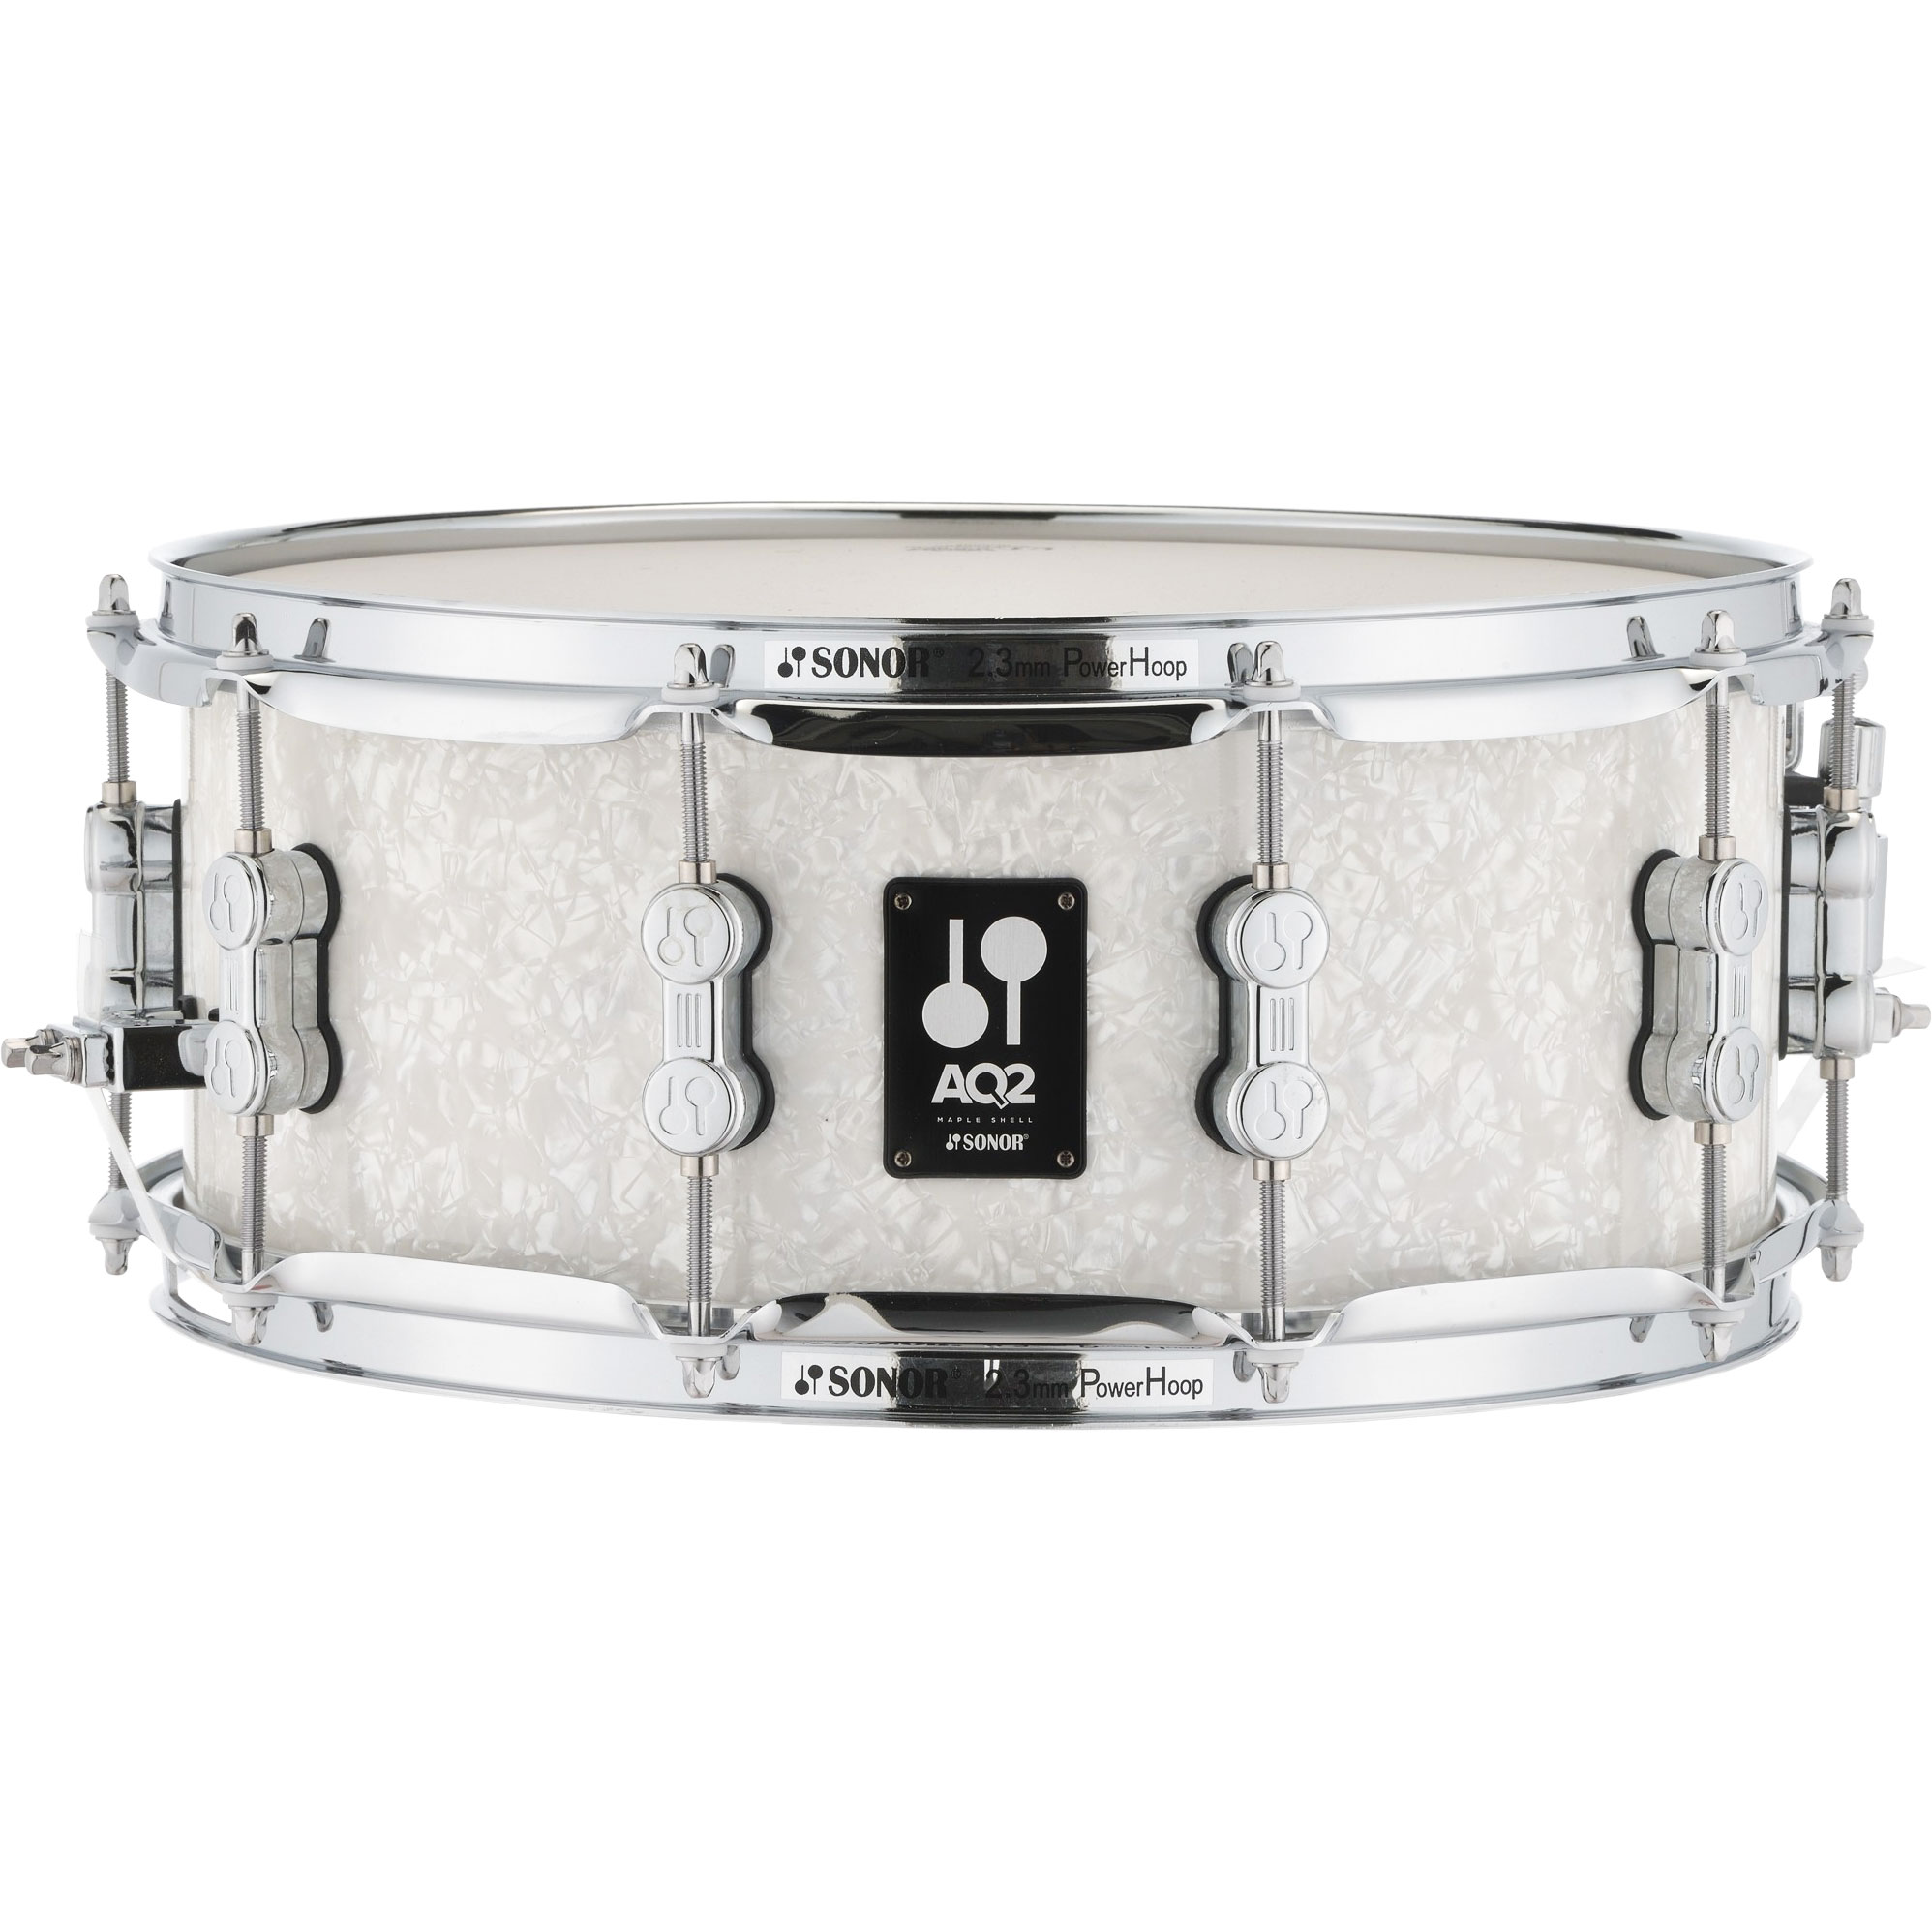 "Sonor 13"" x 6"" AQ2 Snare Drum"